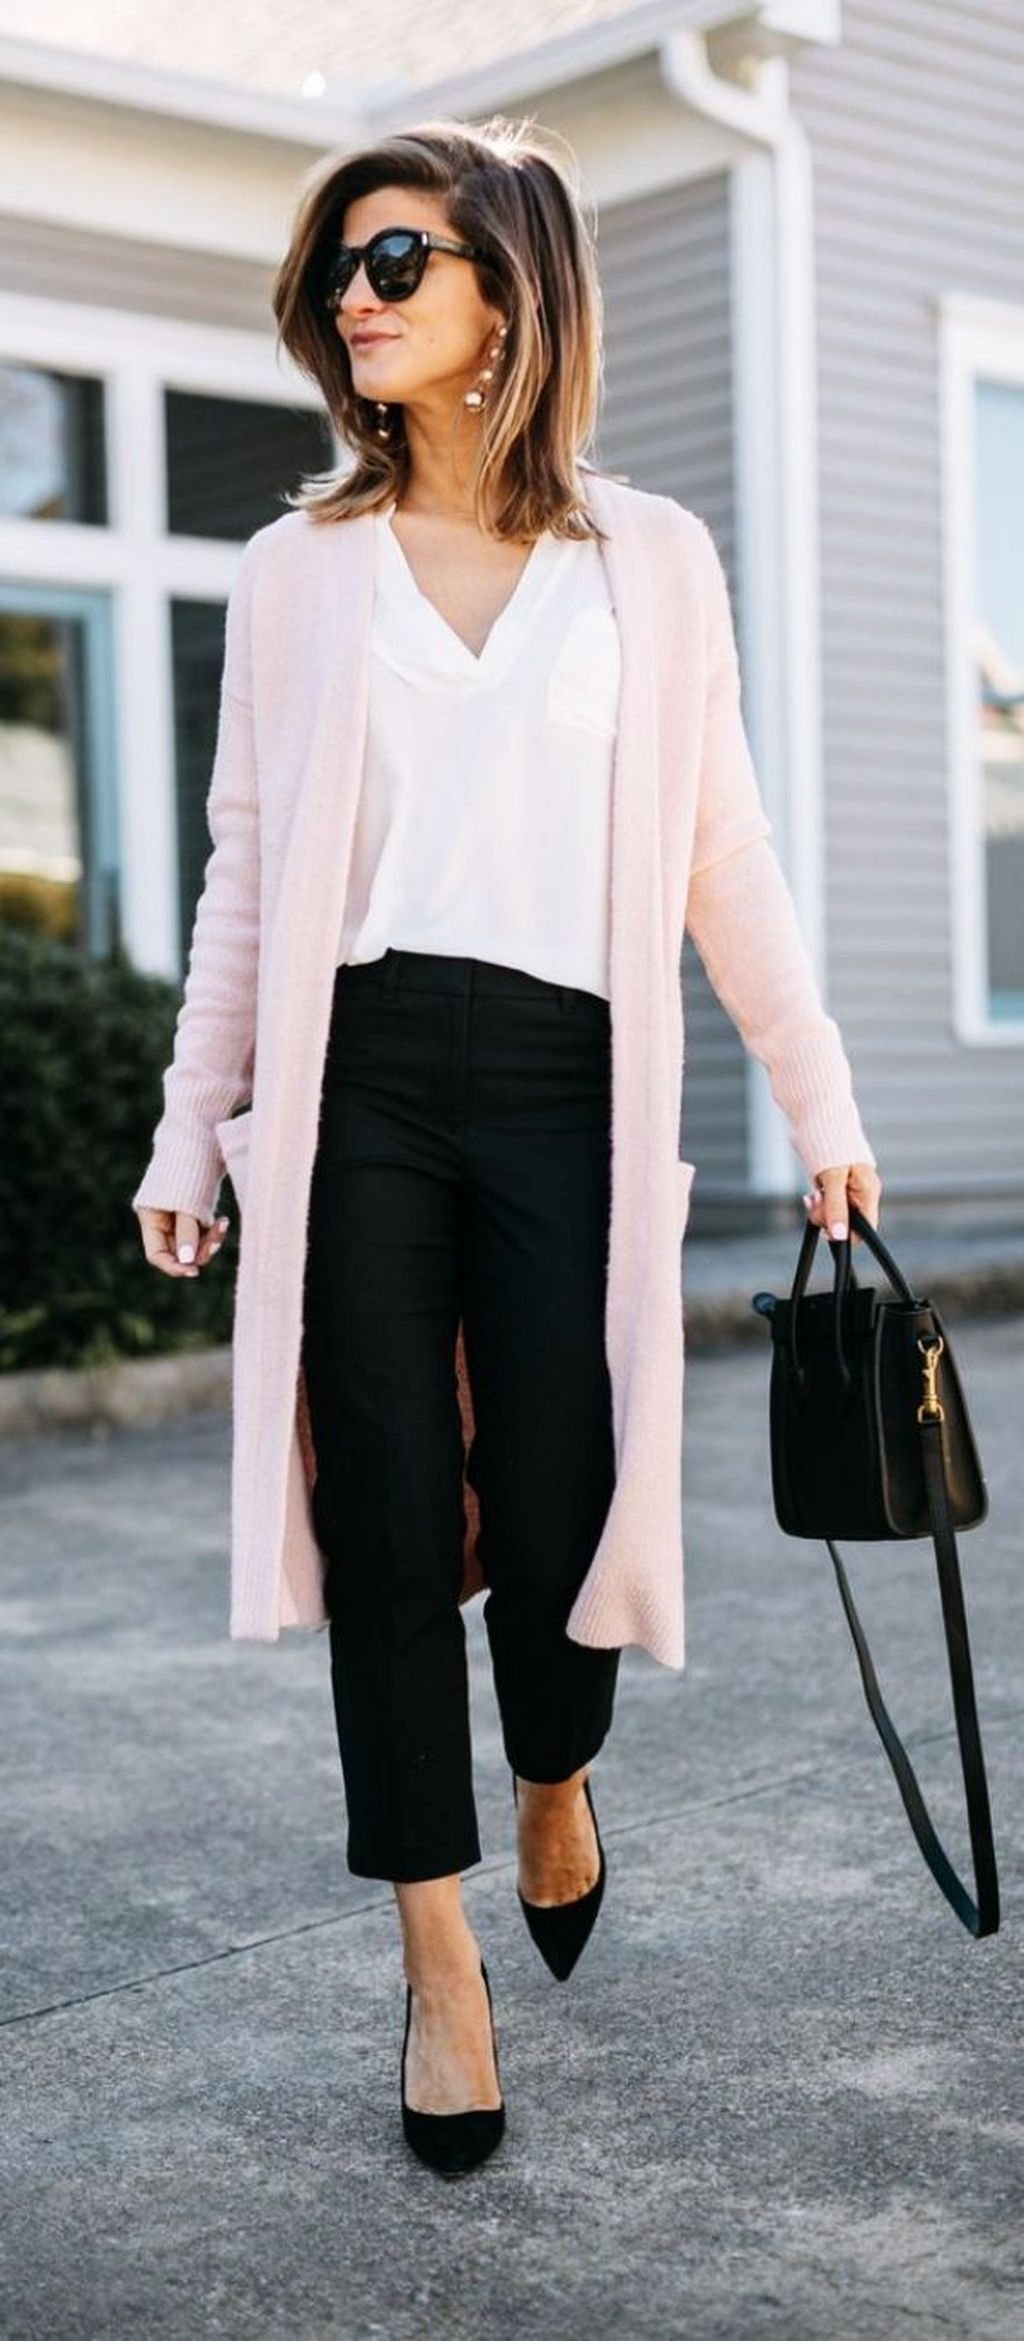 78 The Best Professional Work Outfit Ideas